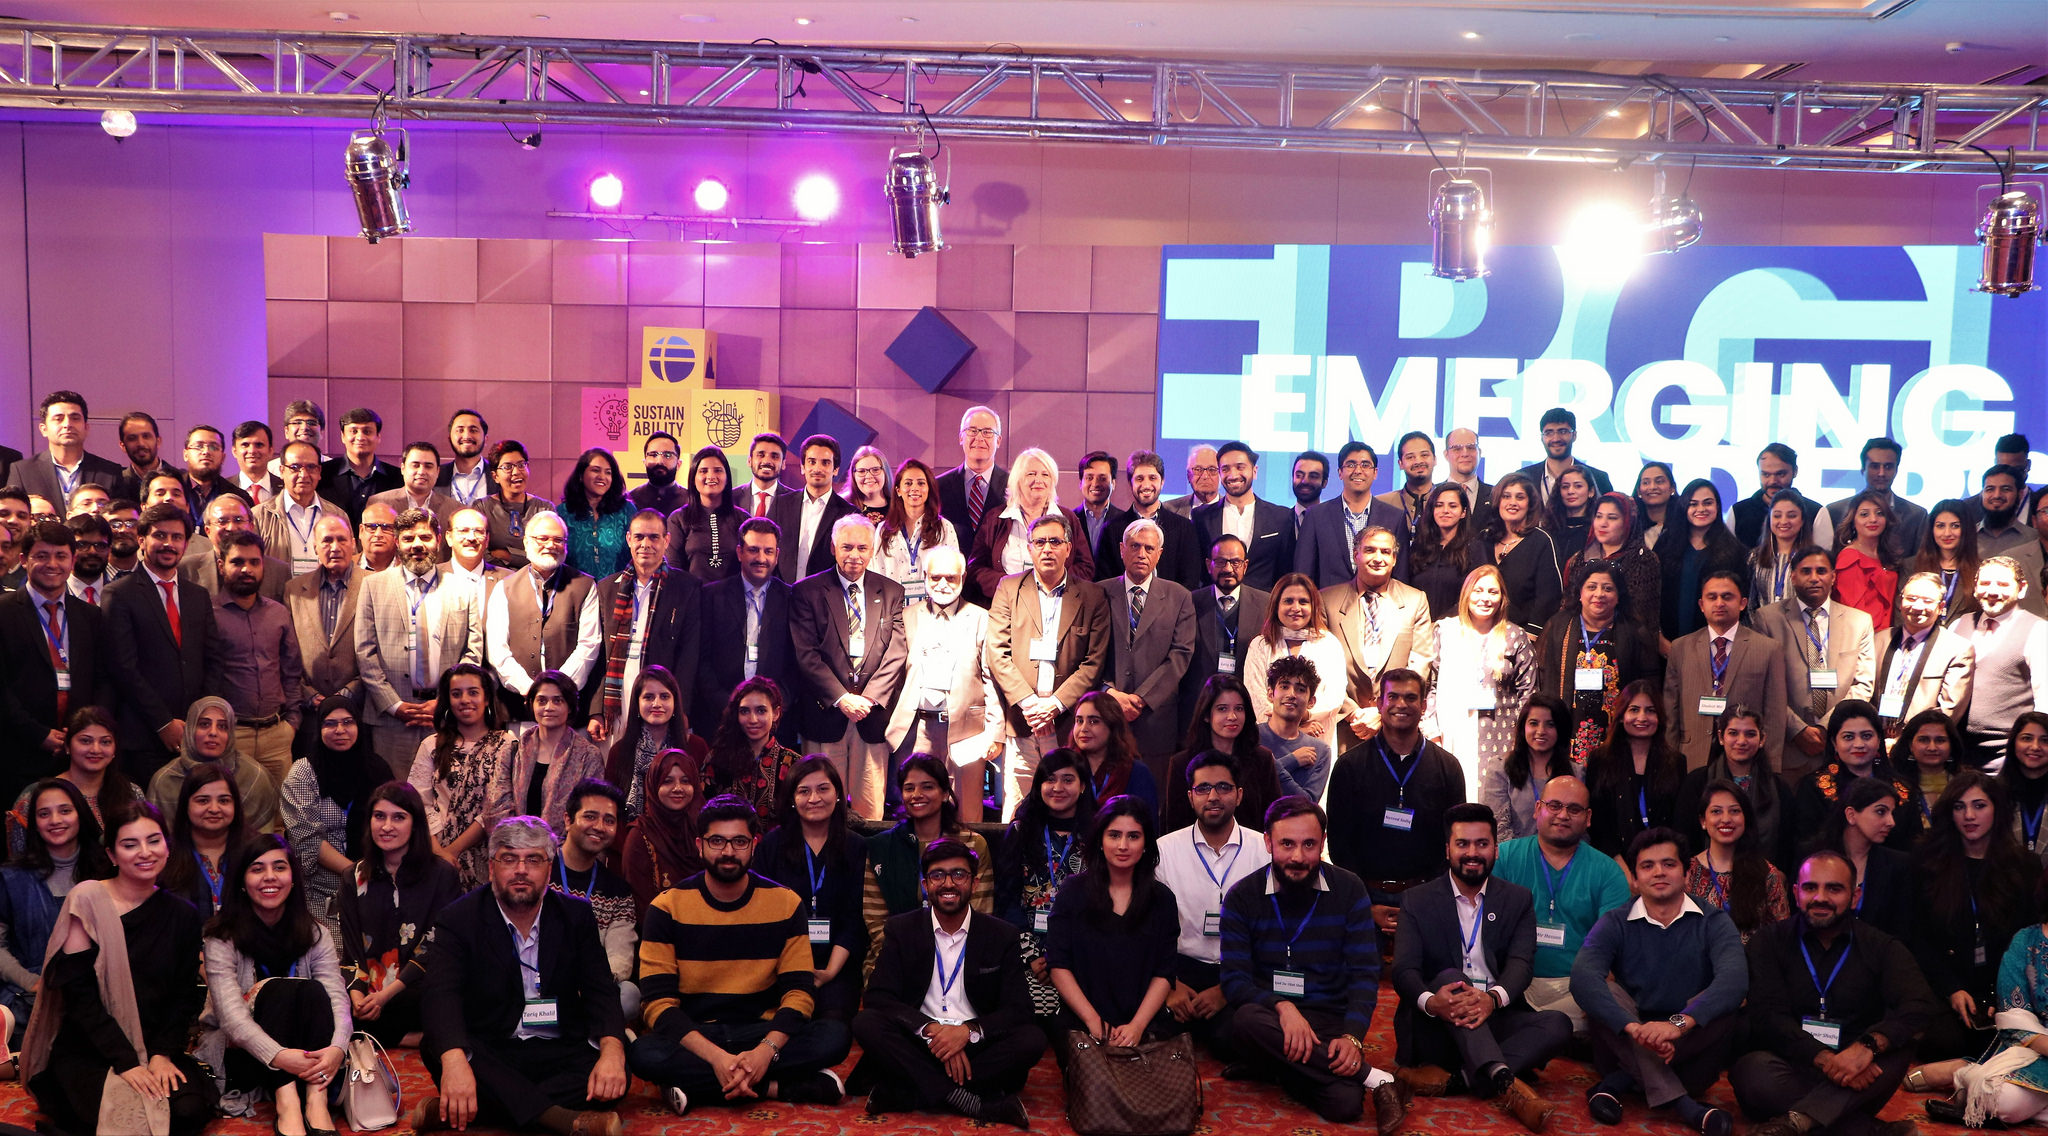 Over 200 Fulbright alumni from across Pakistan attended the 15th annual Fulbright Alumni Conference